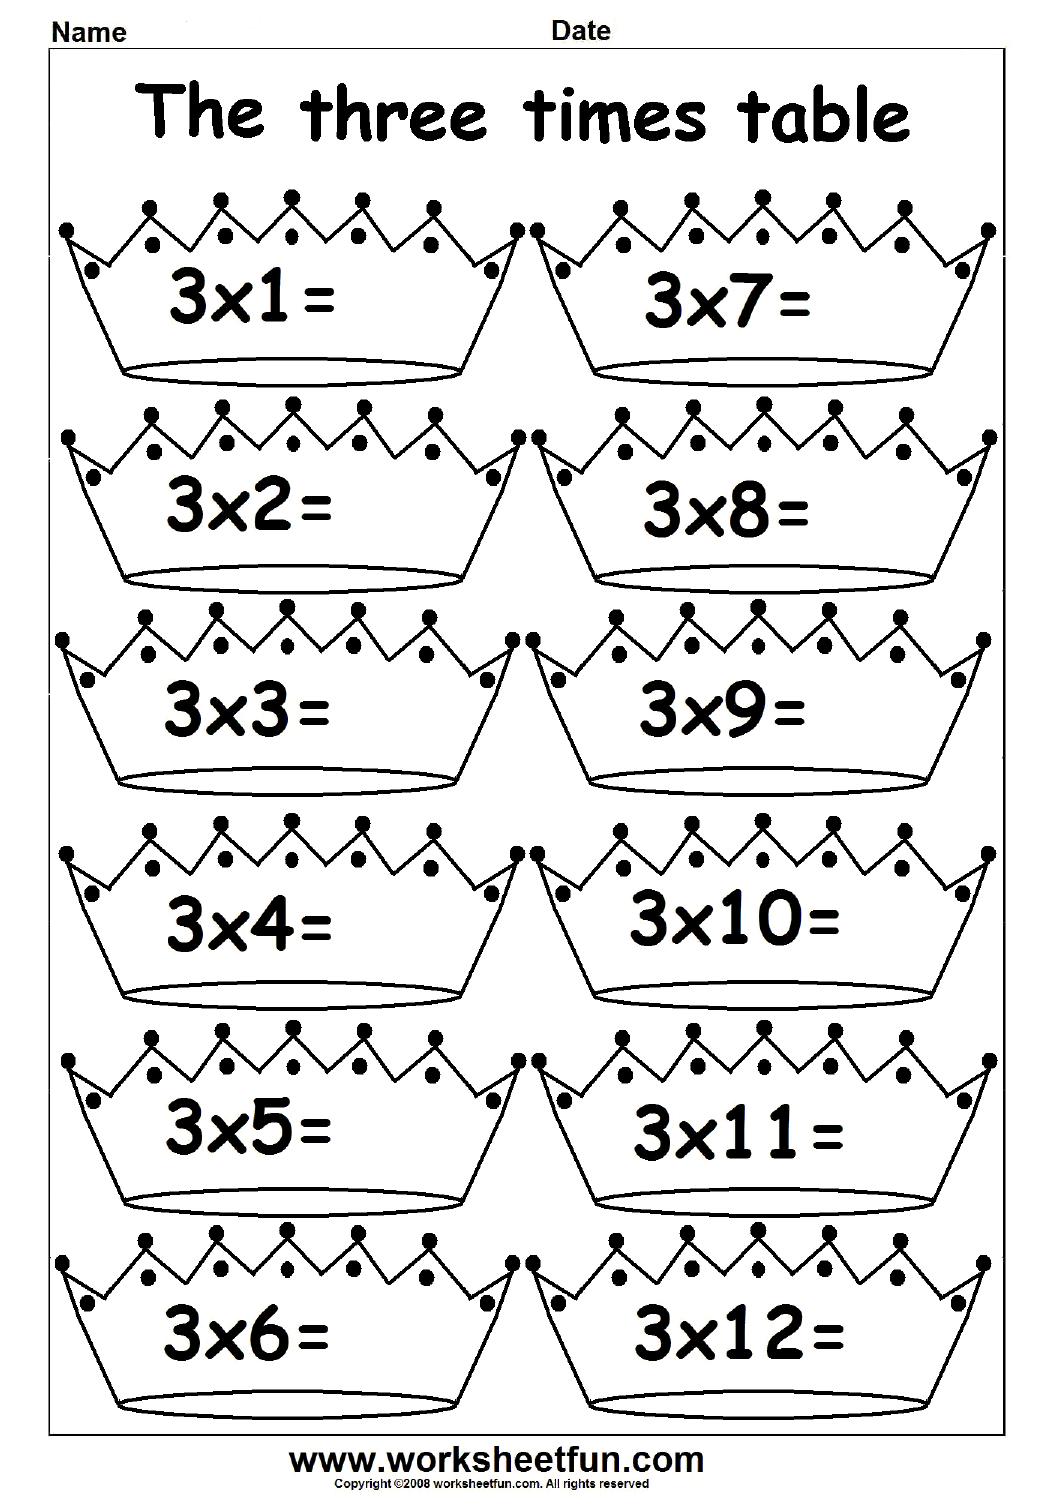 worksheet Multiplication Worksheets 3 Times Tables 2 3 4 5 6 7 8 9 10 11 and 12 times table fun worksheets